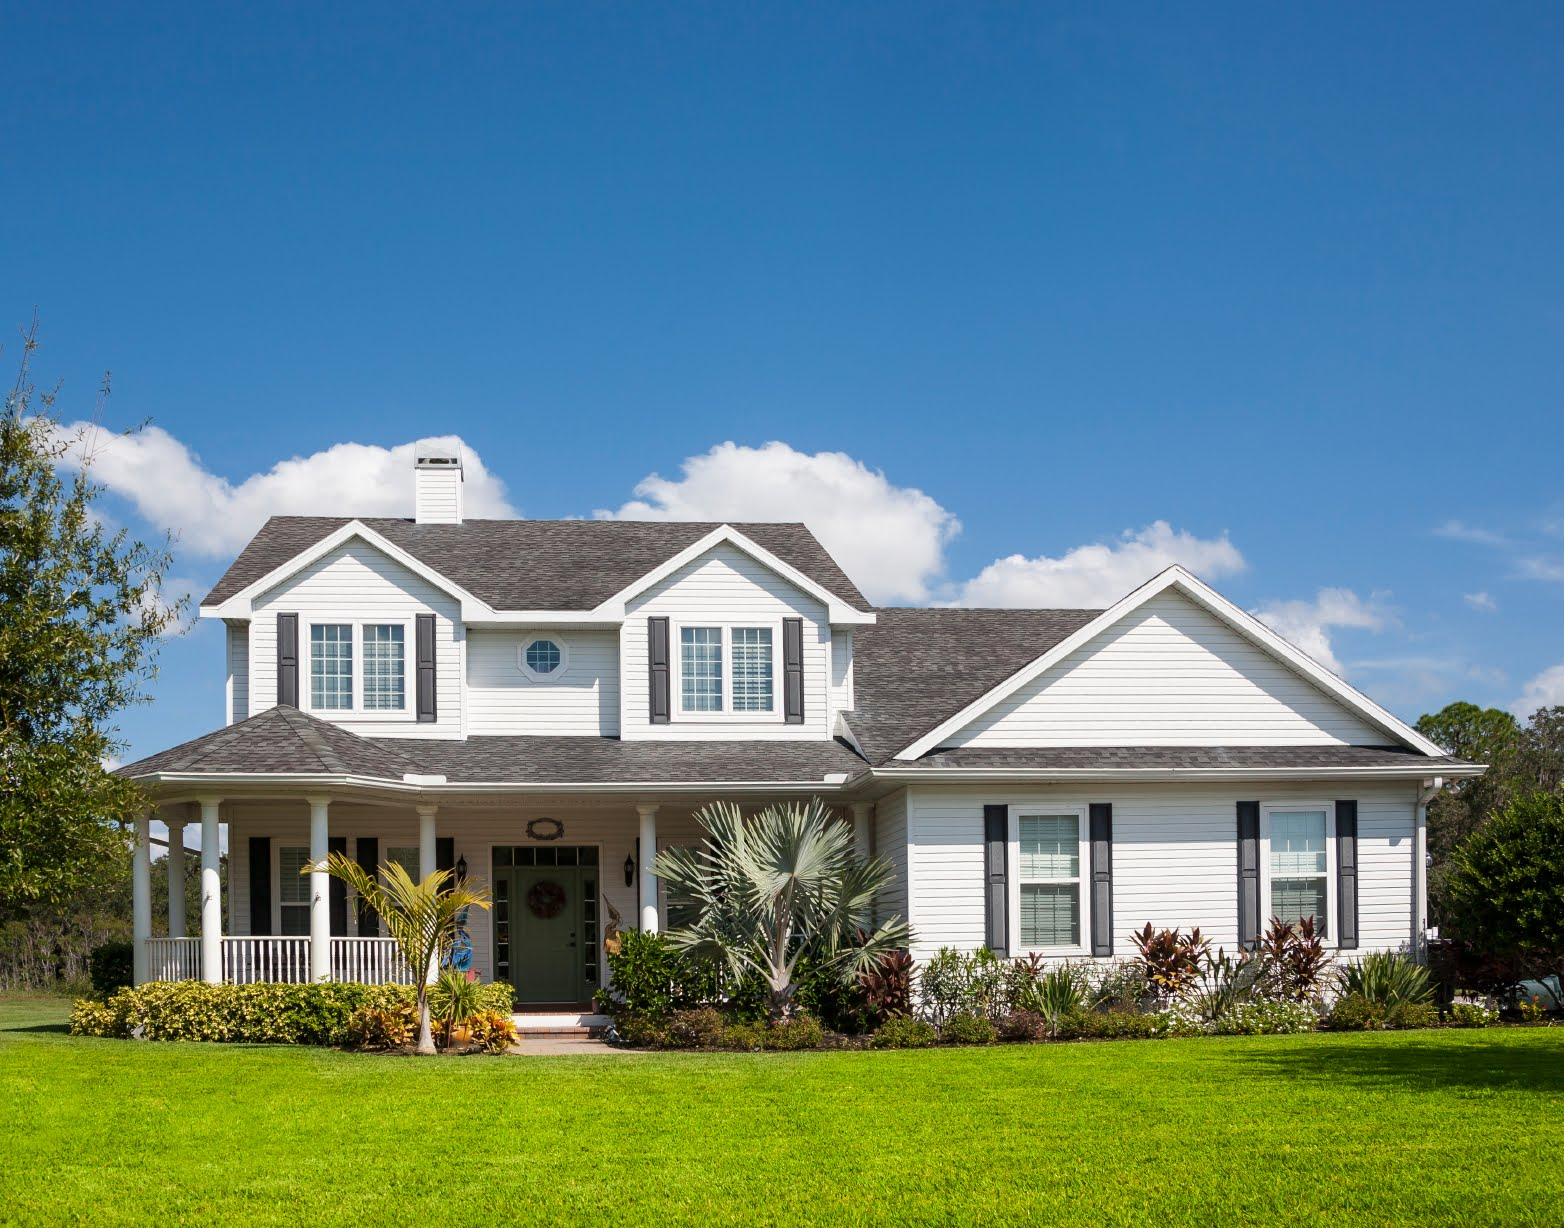 Phil S Main Roofing Timeless Exterior Colors For Your Home